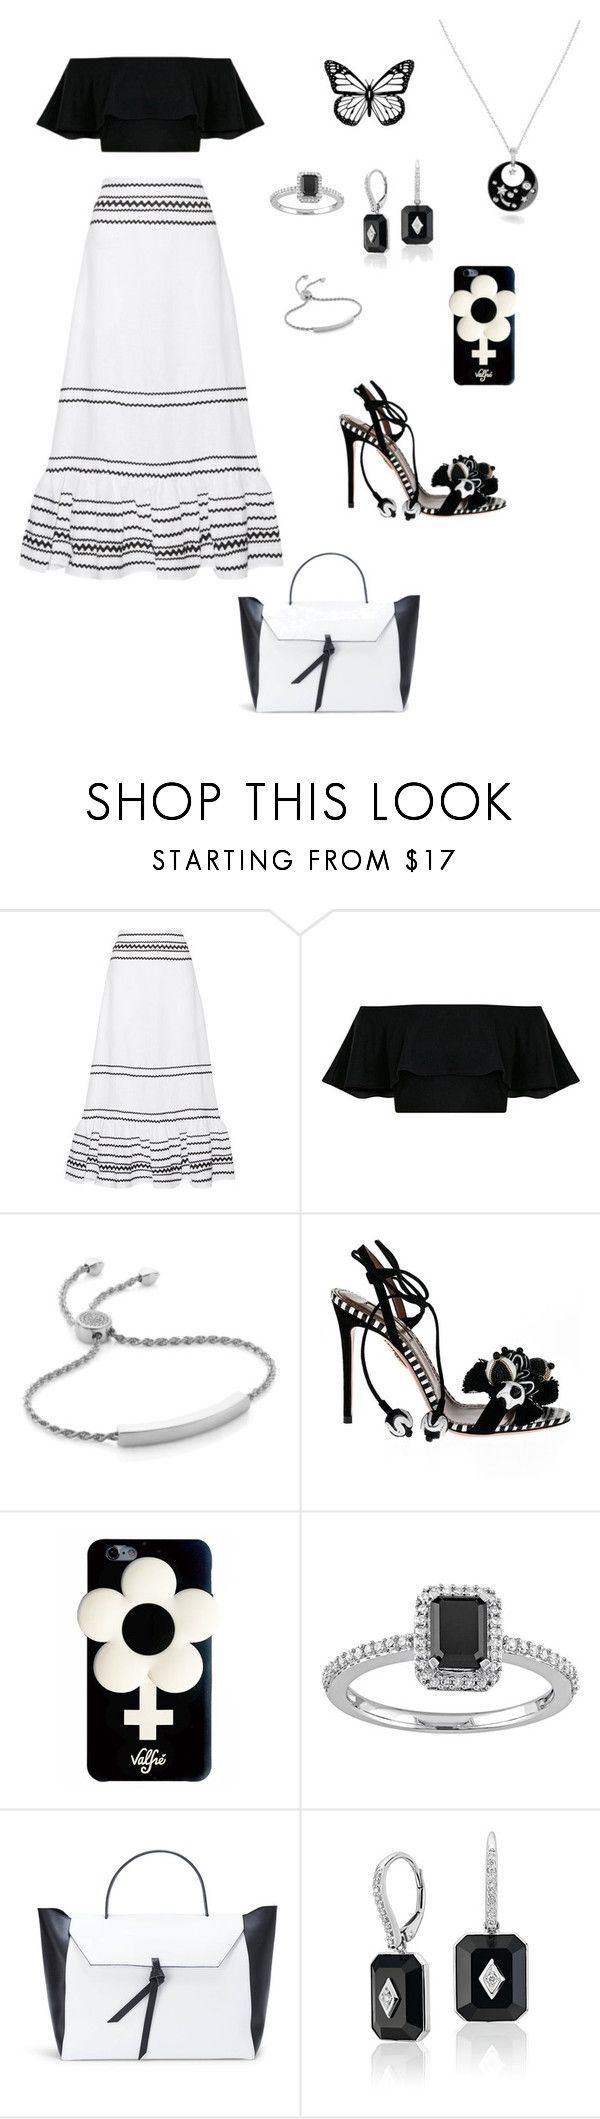 """""""Black and white party 🎊"""" by mrsagosto ❤ liked on Polyvore featuring Lisa Marie Fernandez, Monica Vinader, Aquazzura, Valfré and Alexandra de Curtis"""